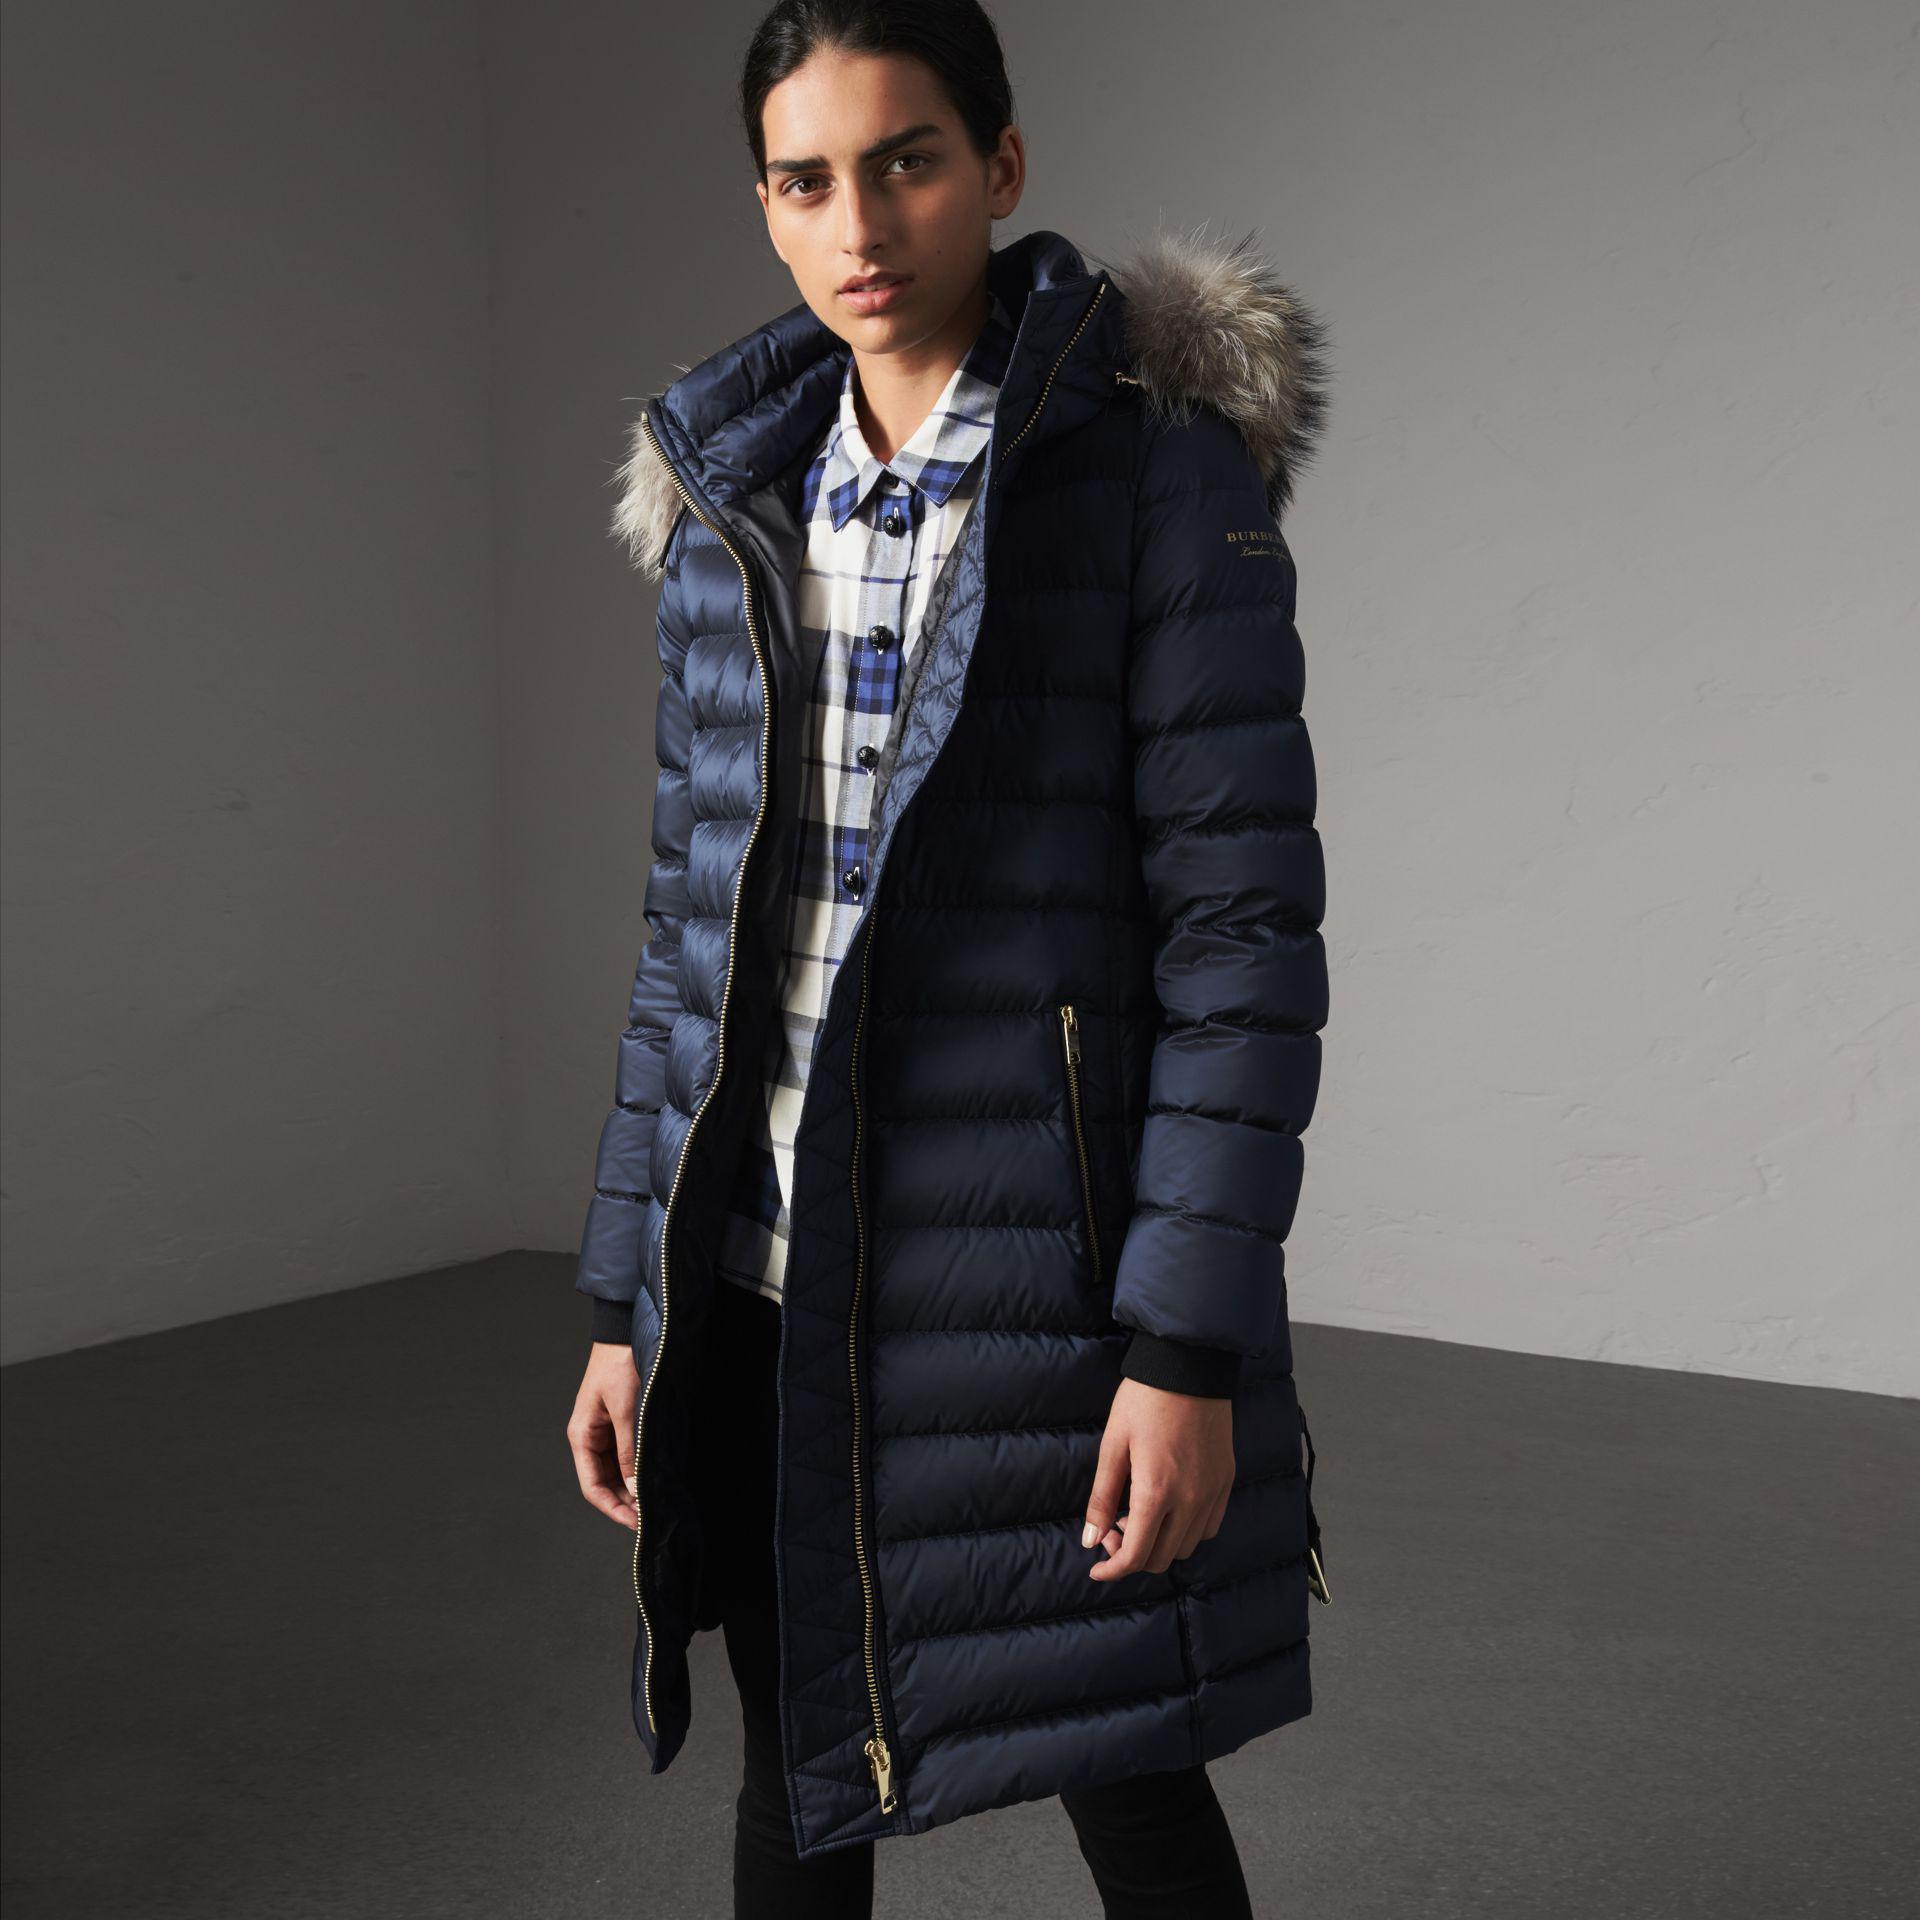 a26759142 Burberry Detachable Fur Trim Down-filled Puffer Coat With Hood in ...